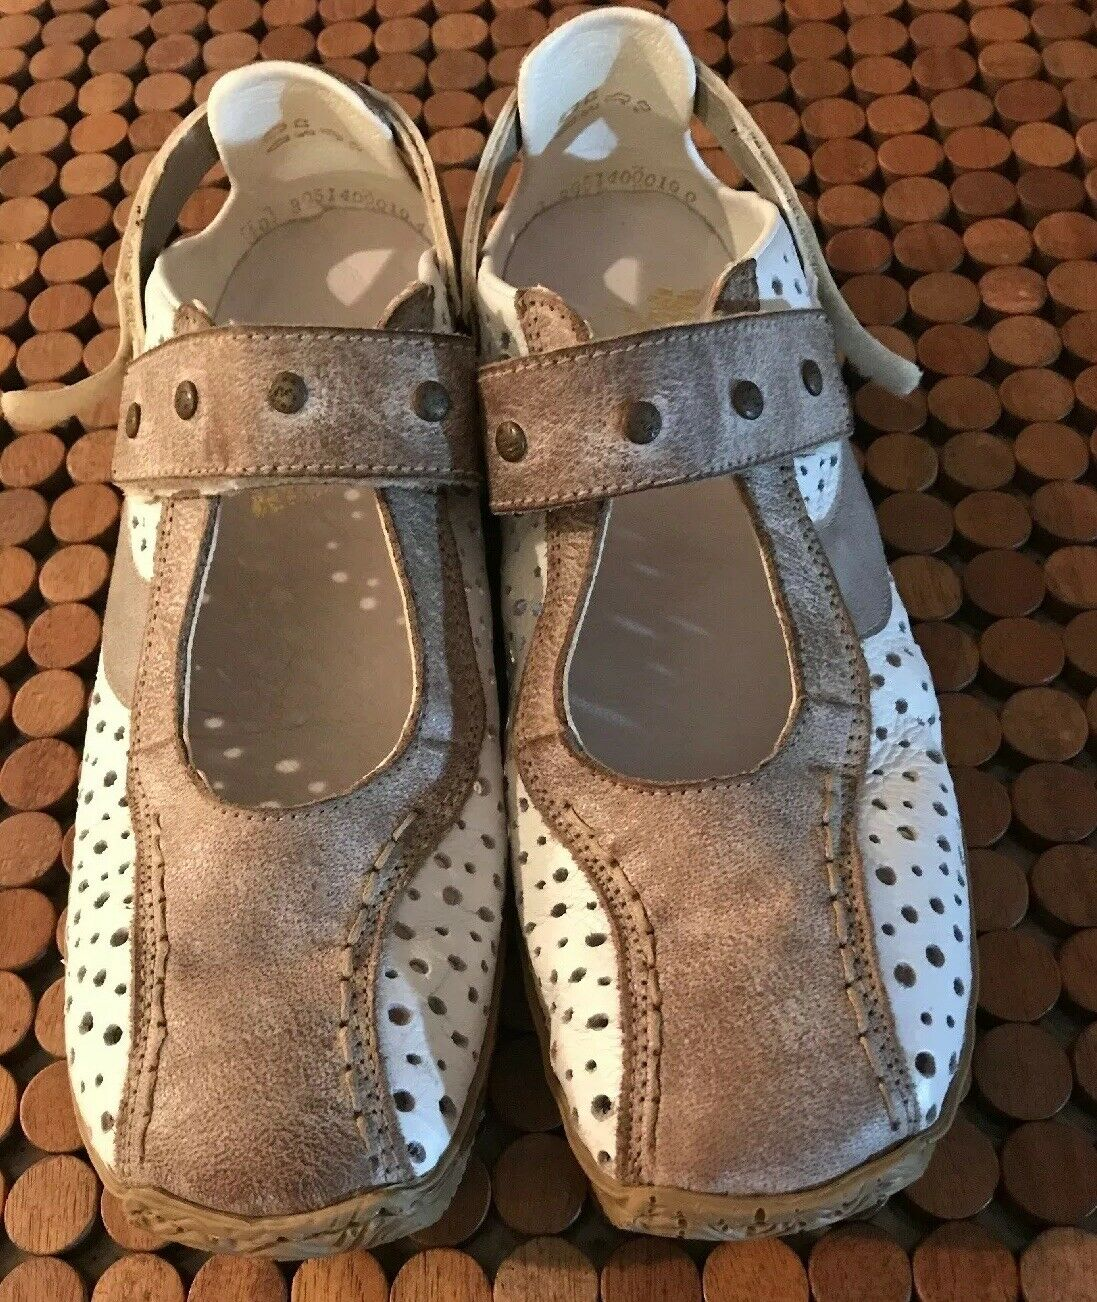 RIEKER Women's AntiStress Perforated Leather Mary Jane Size 40, US 9 9.5